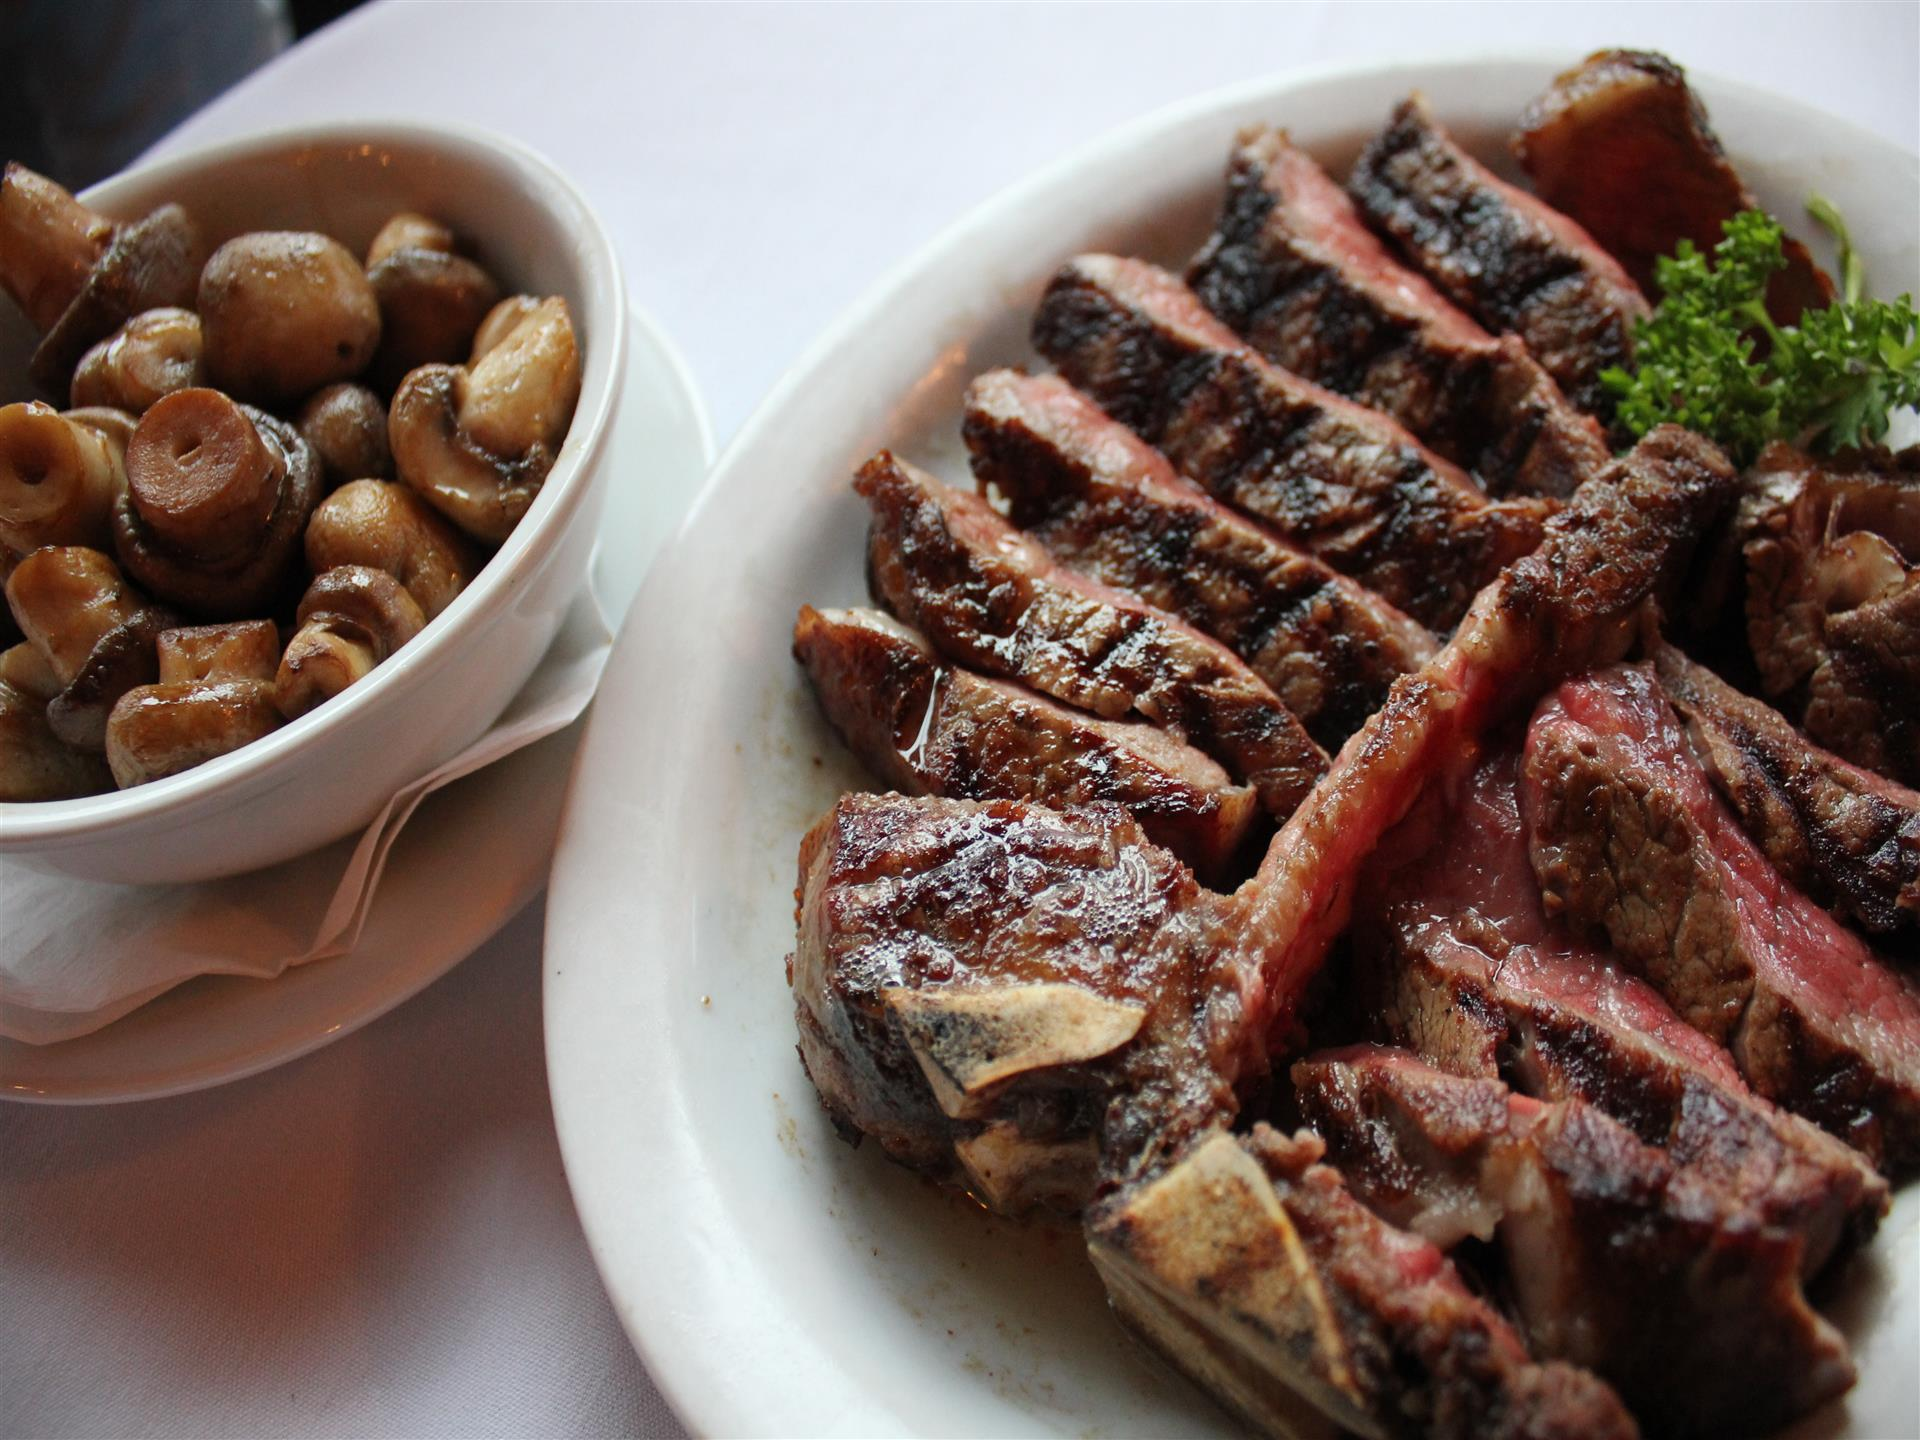 Sliced beef on plate with side of mushrooms